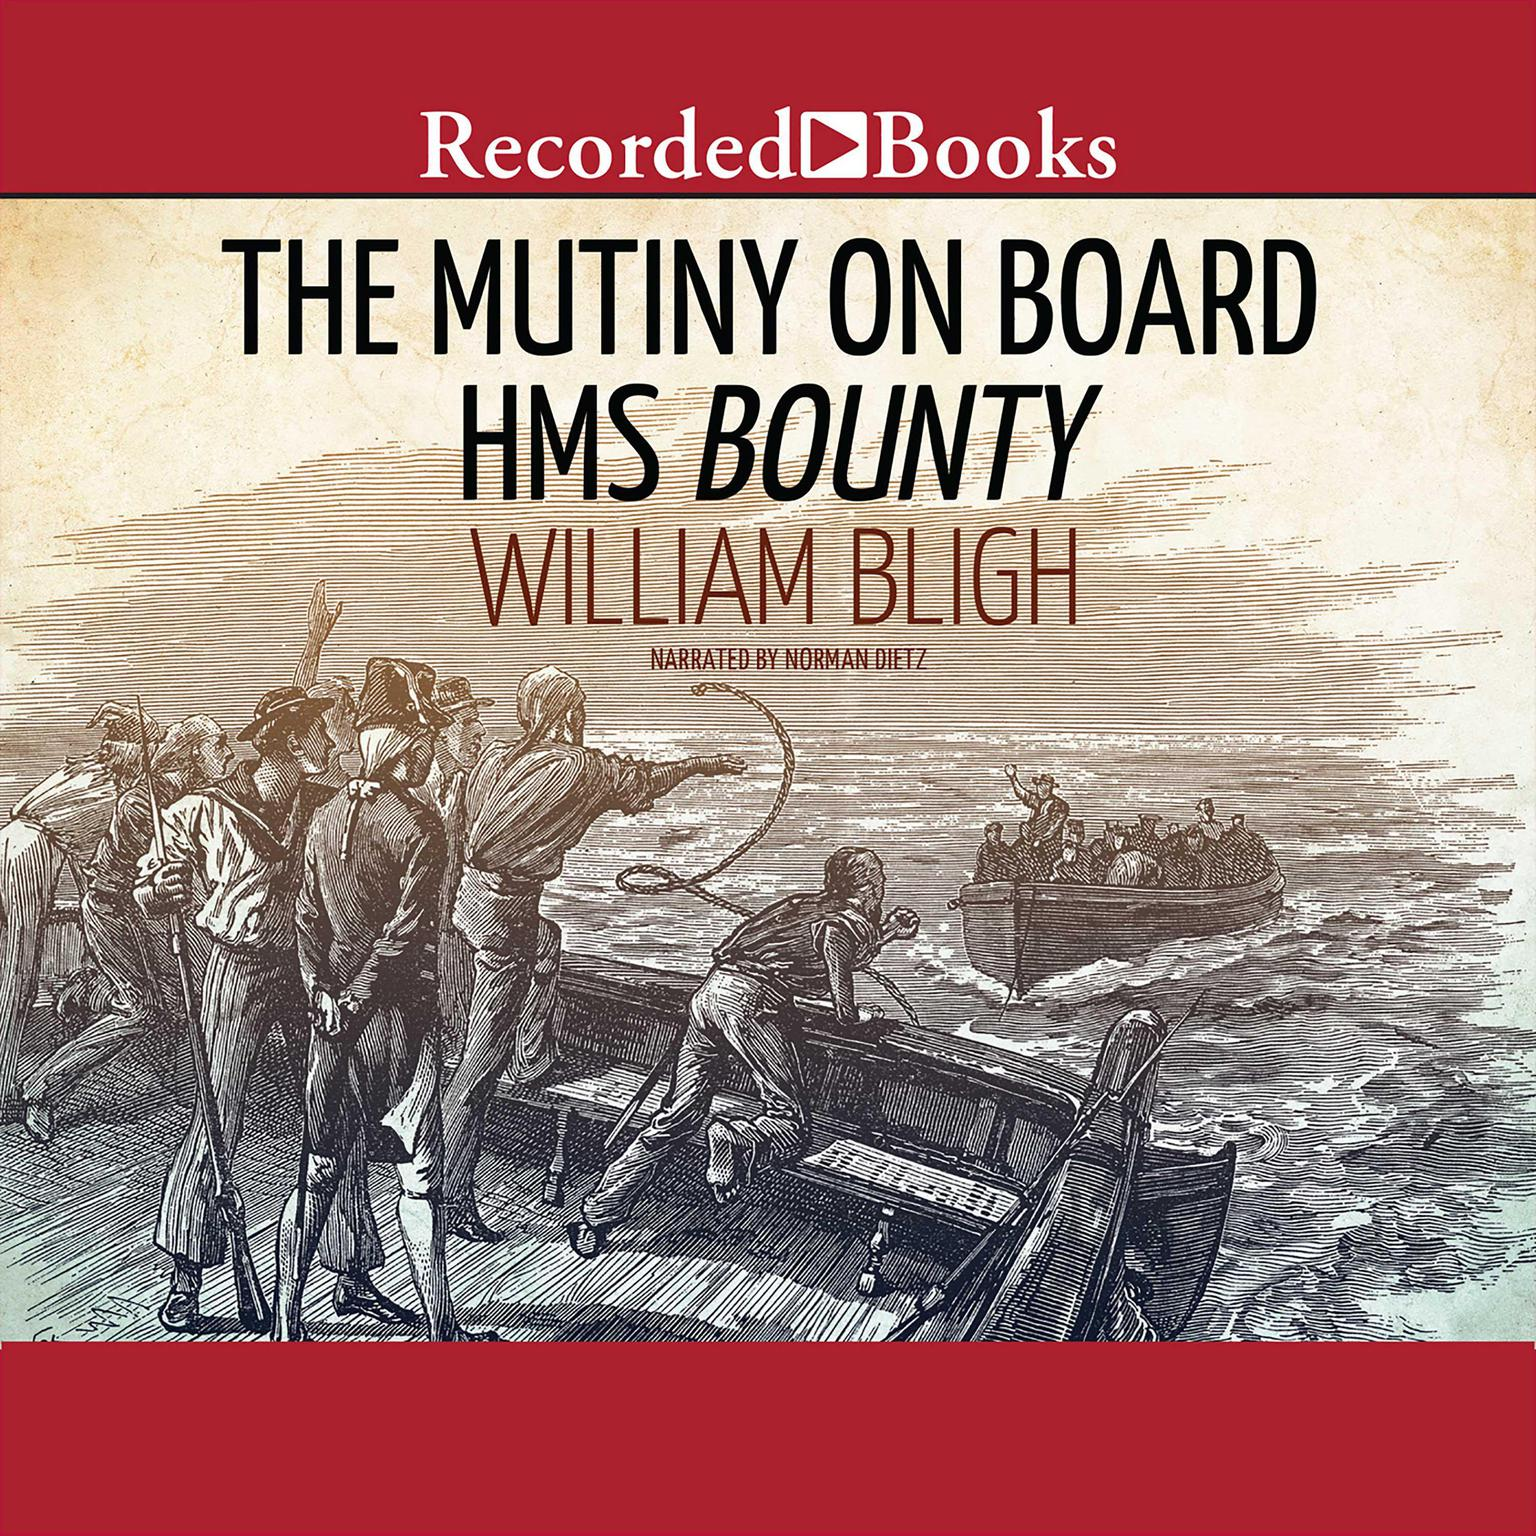 The Mutiny on Board H.M.S. Bounty - Audiobook by William Bligh